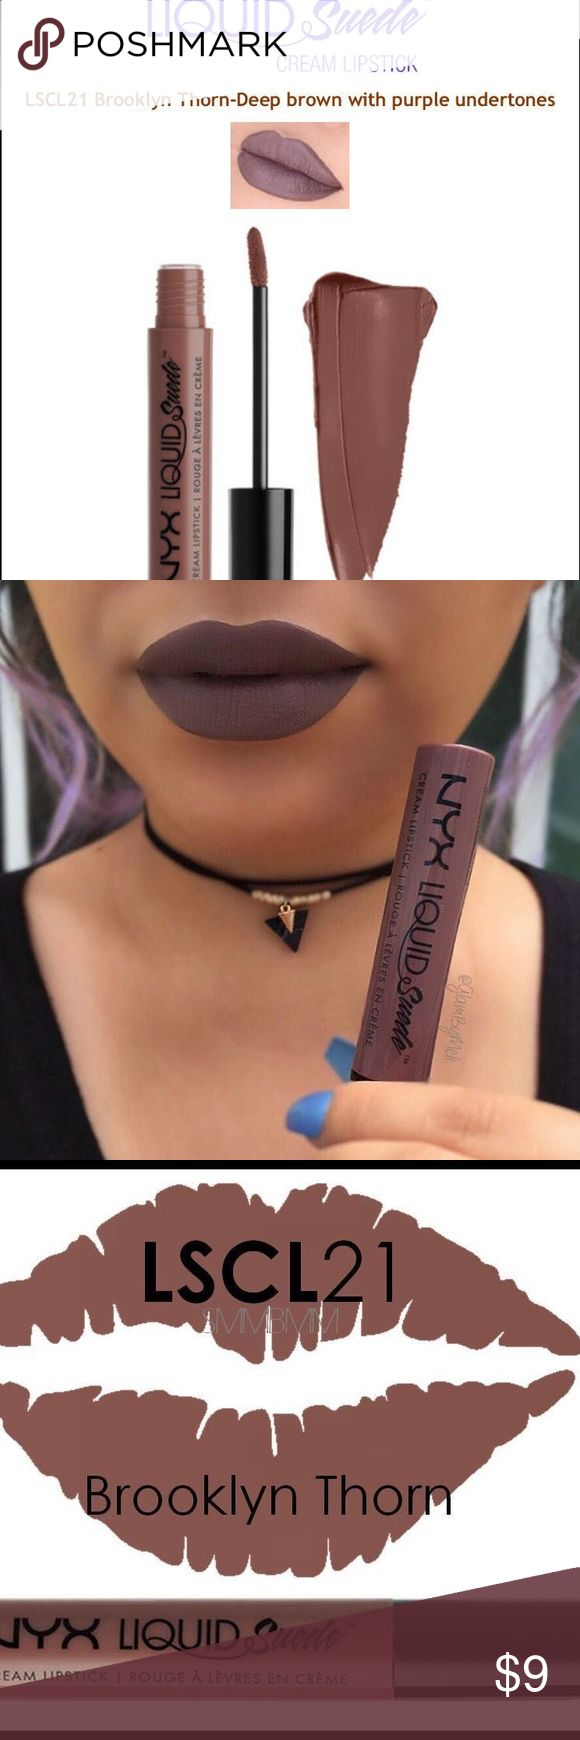 *NEW* Liquid Suede Lipstick *Brooklyn Thorn* *NYX NEW COLOR*Doll of your lips in plush and vibrant colors that are just PERFECT! This NEW liquid cream suede lipstick by NYX Glides on and sets into the perfect matte finish. Available in several velvety soft shades- however MOST are selling out FAST! Also water proof & stays on all day!EXPEDITED SHIPPINGBUNDLE ONLY 3 & RECEIVE AN ADDITIONAL 15% OFF, OR JUST 2 FOR AN ADDITIONAL 10% OFF!ALL ORDERS WILL INCLUDE EXTRA CUTE FREE GIFTS!COME CHECK…